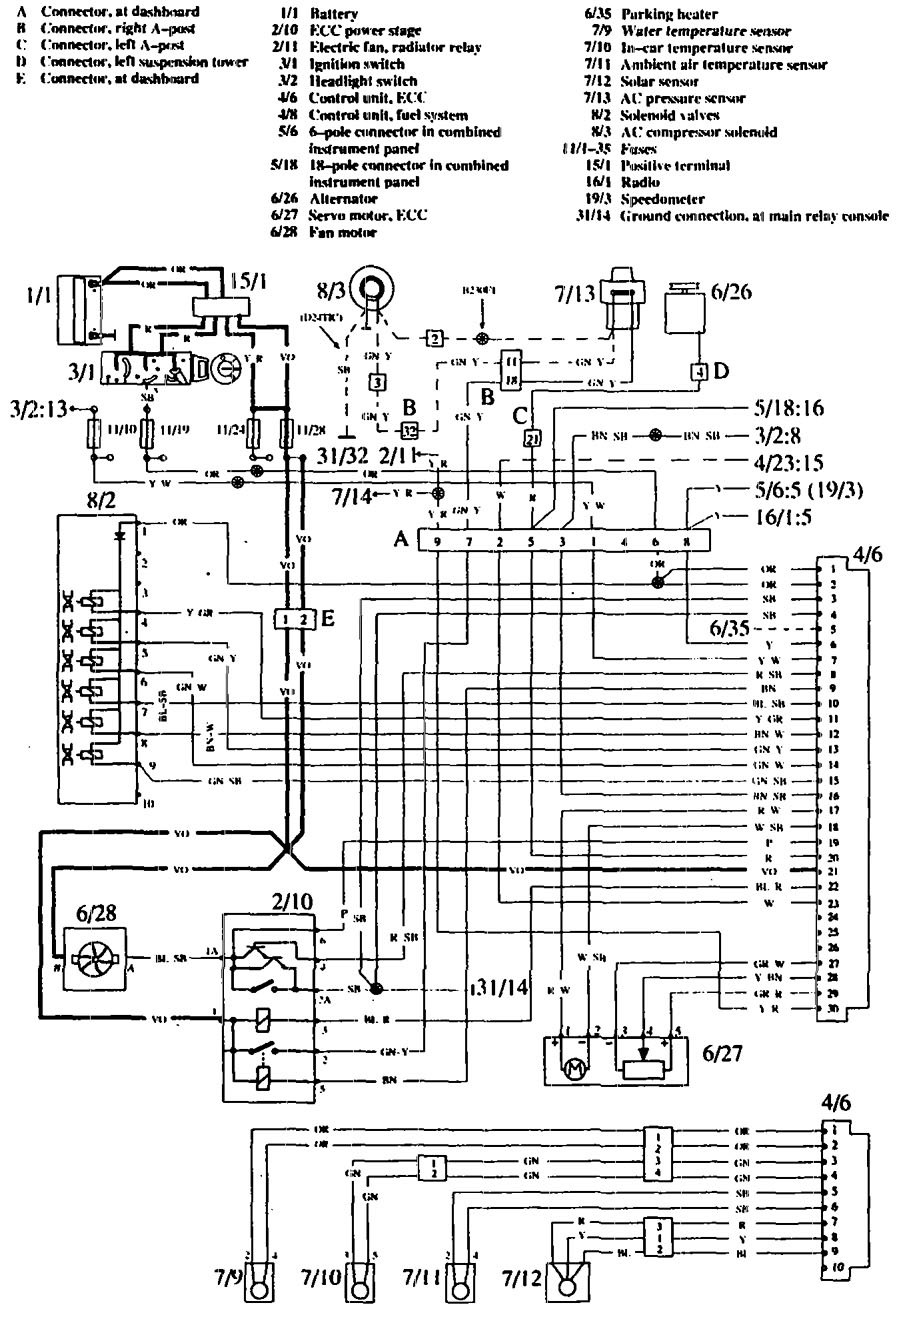 volvo 760  1990  - wiring diagrams - hvac controls